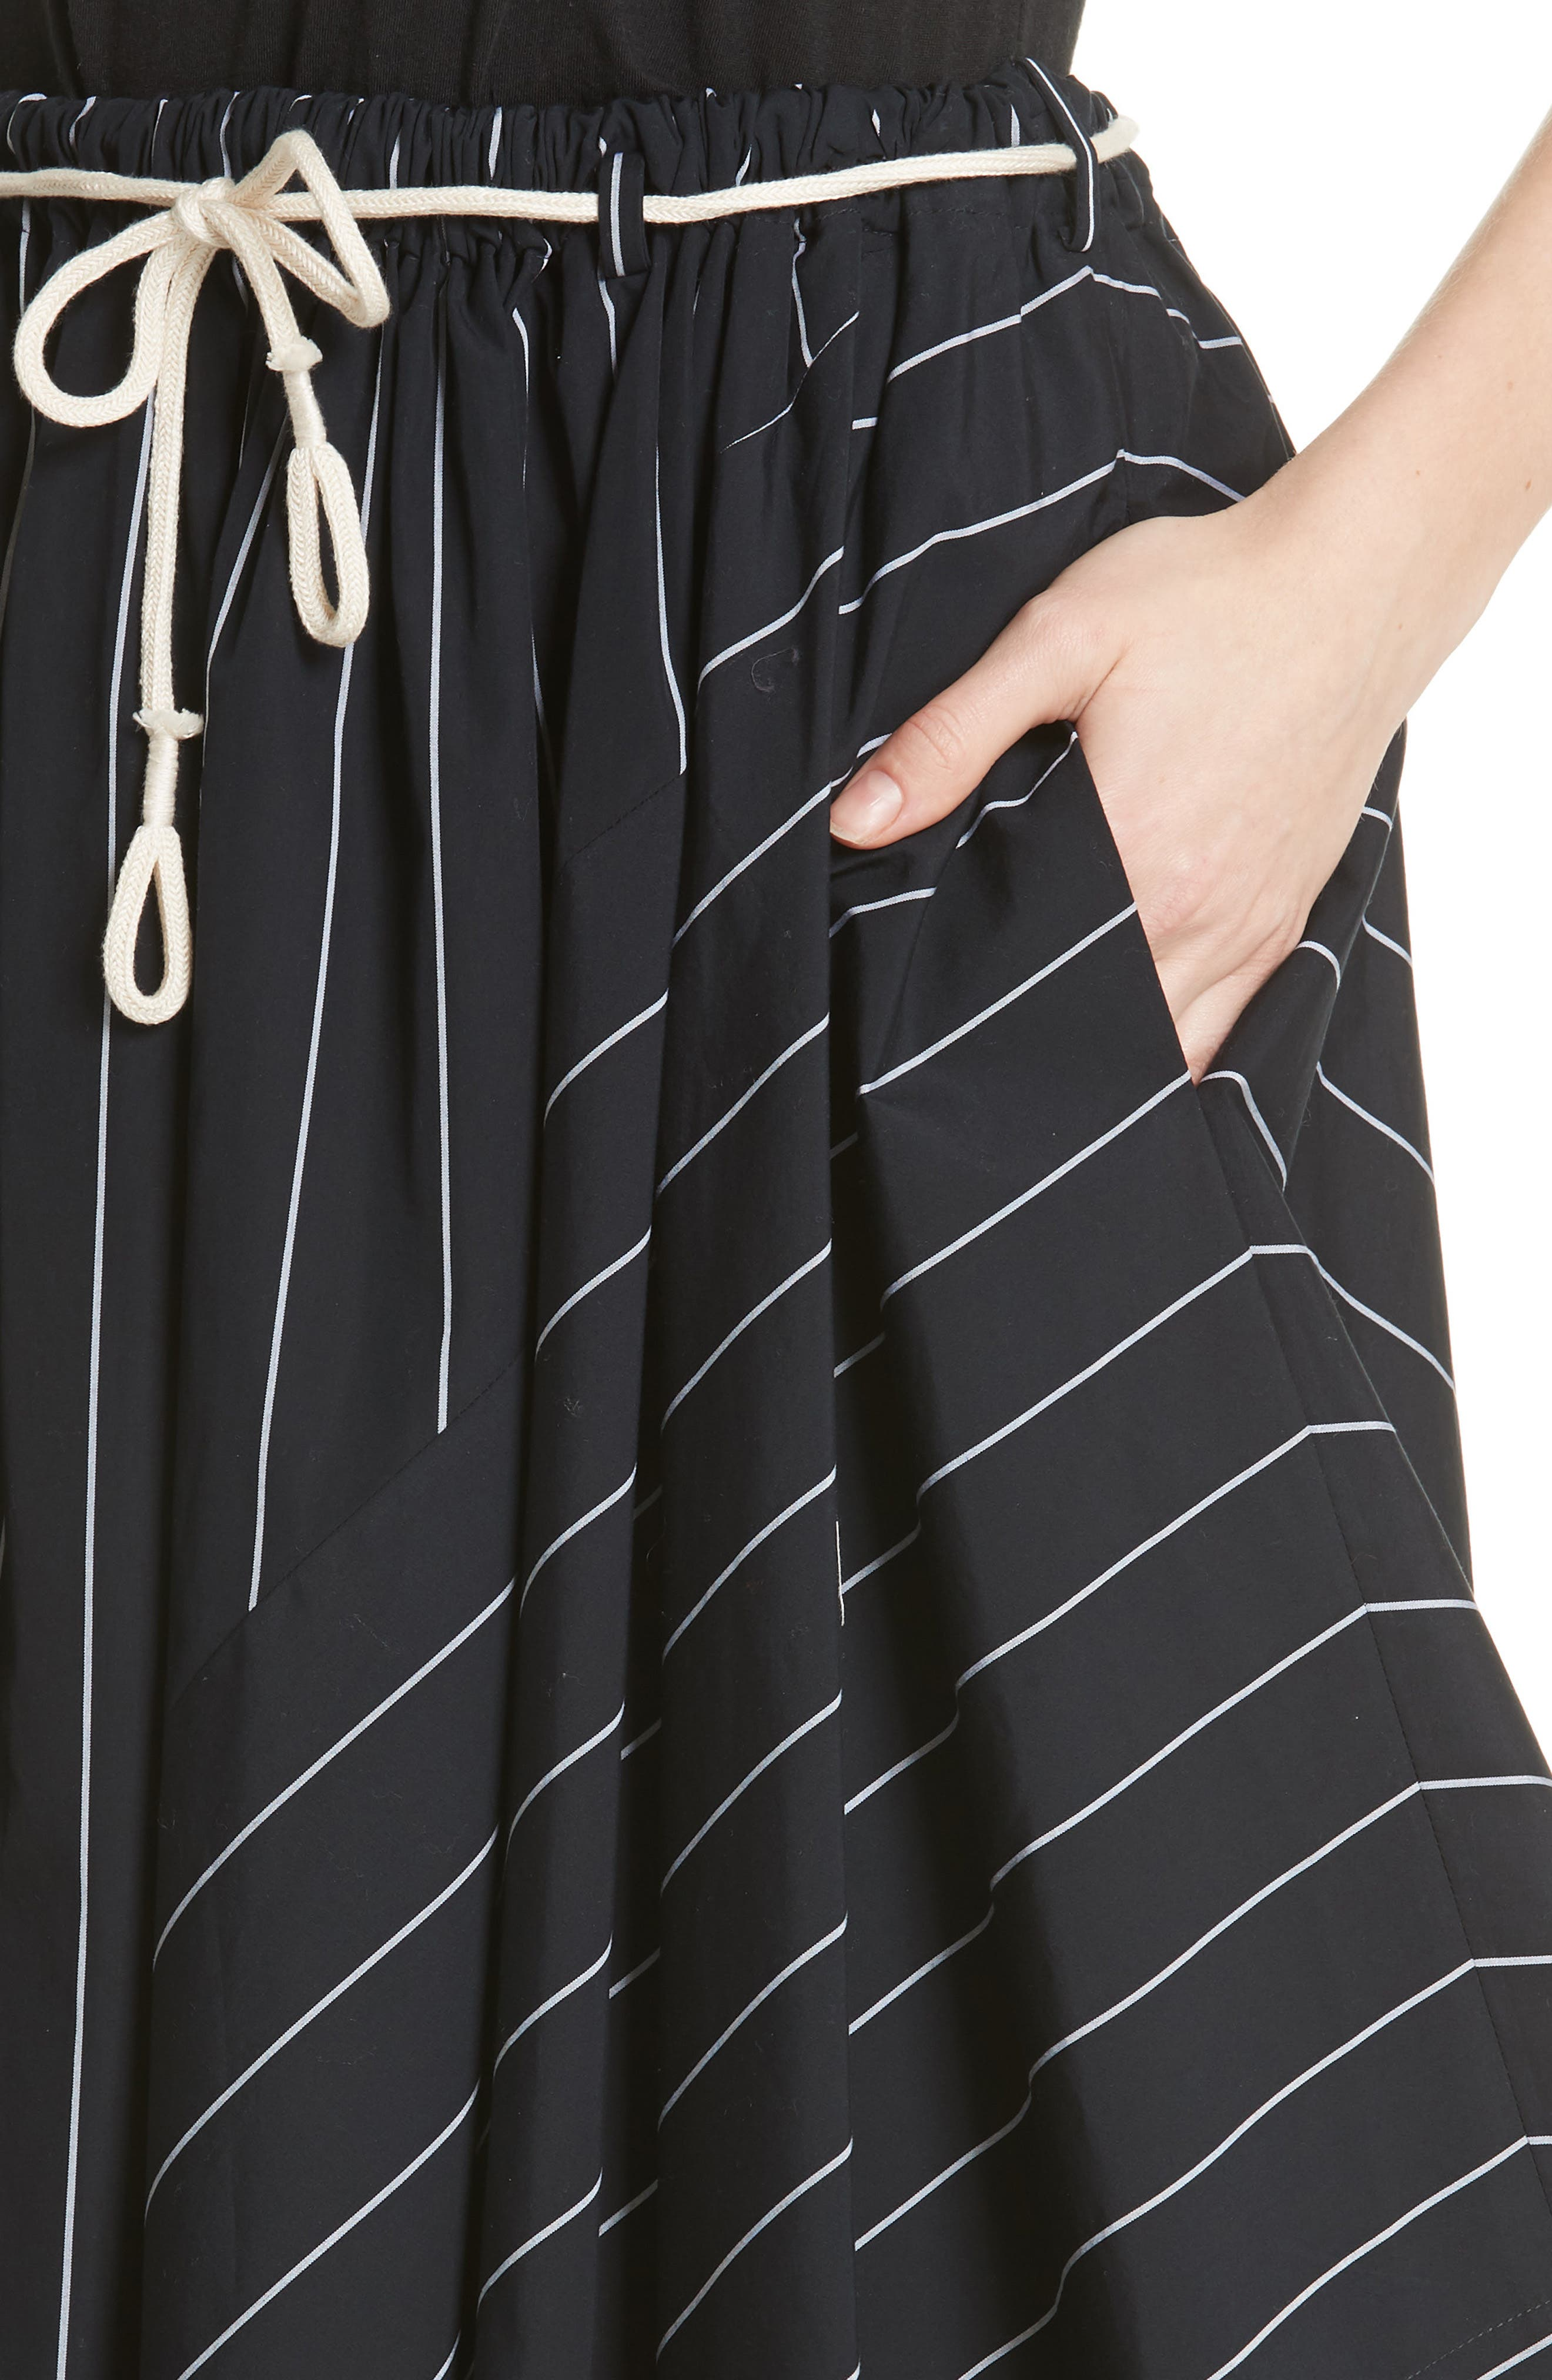 Skinny Stripe Asymmetrical Cotton Skirt,                             Alternate thumbnail 4, color,                             Coastal/ Optic White